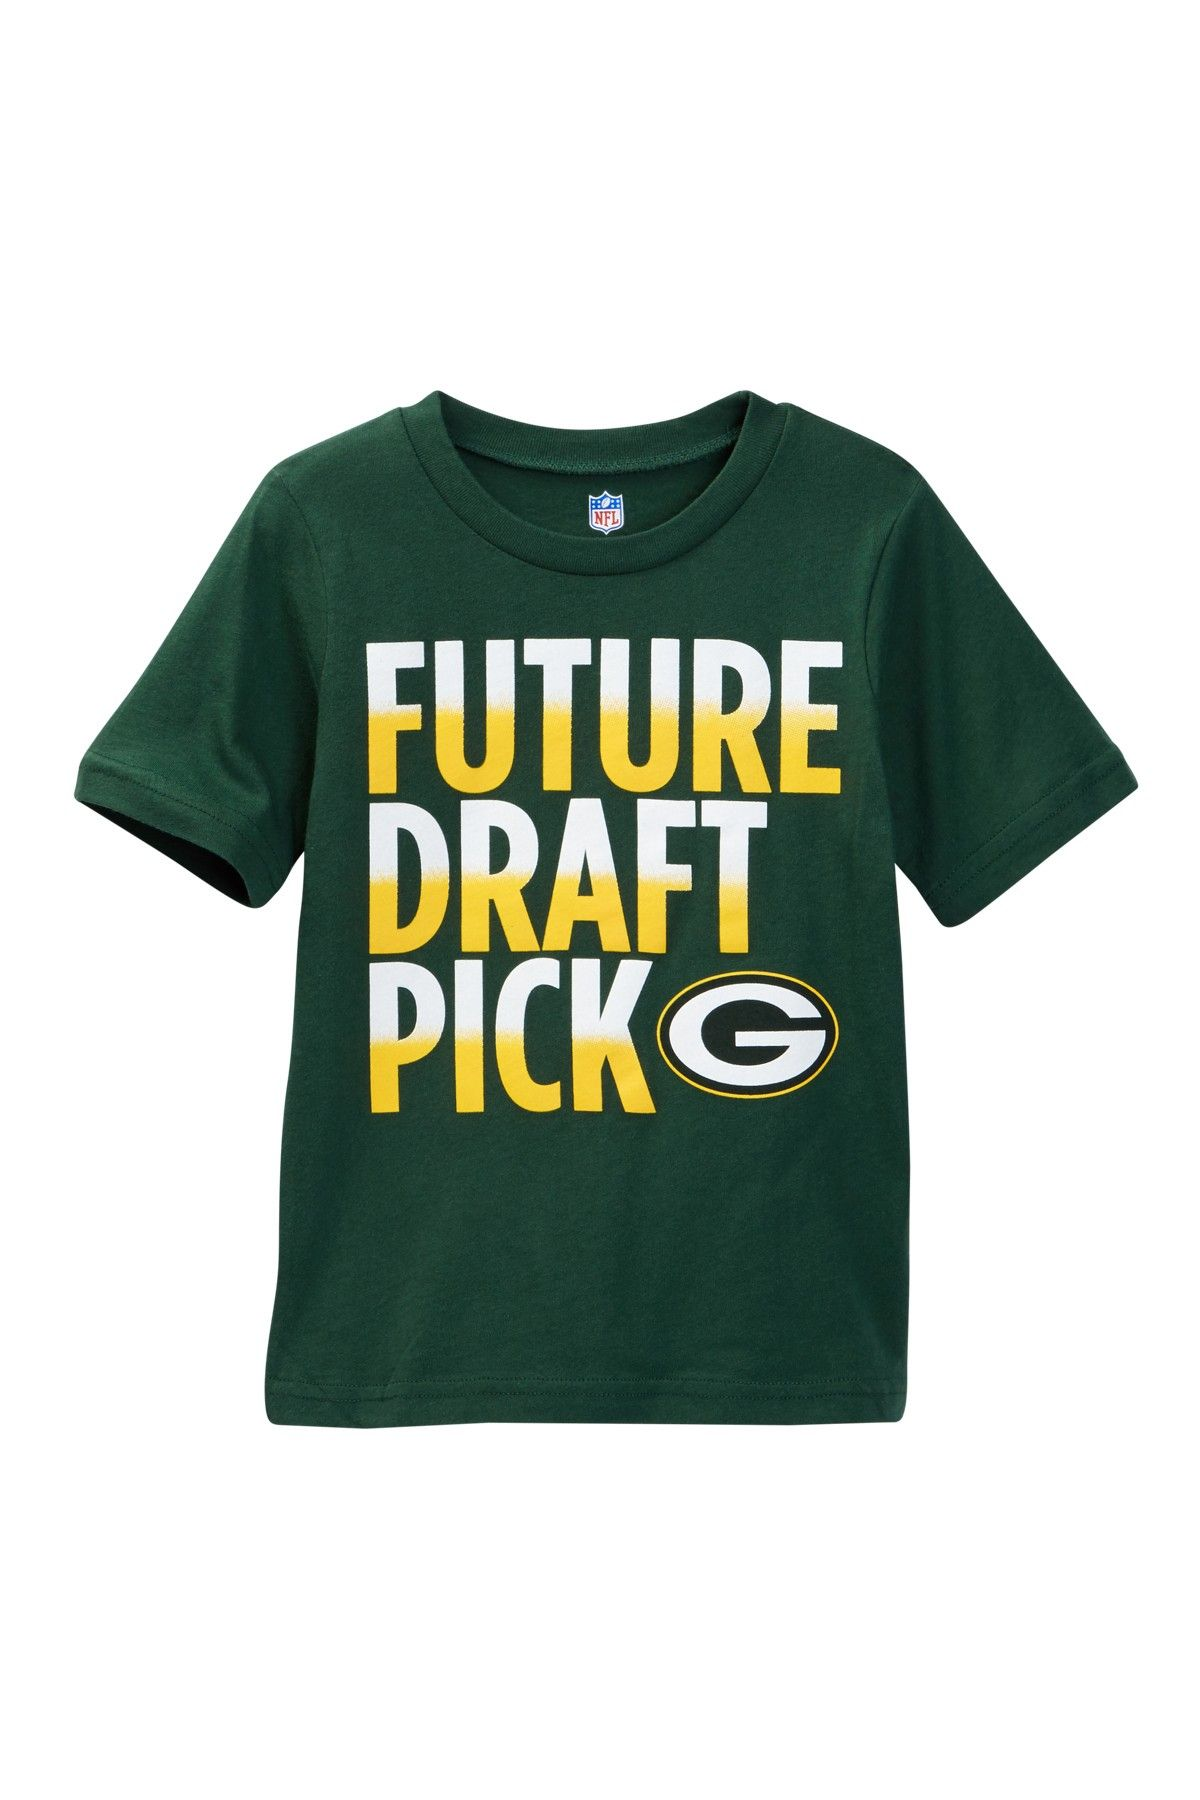 Nfl Green Bay Packers Future Draft Pick Tee Toddler Boys Toddler Boys Nfl Green Bay Boys